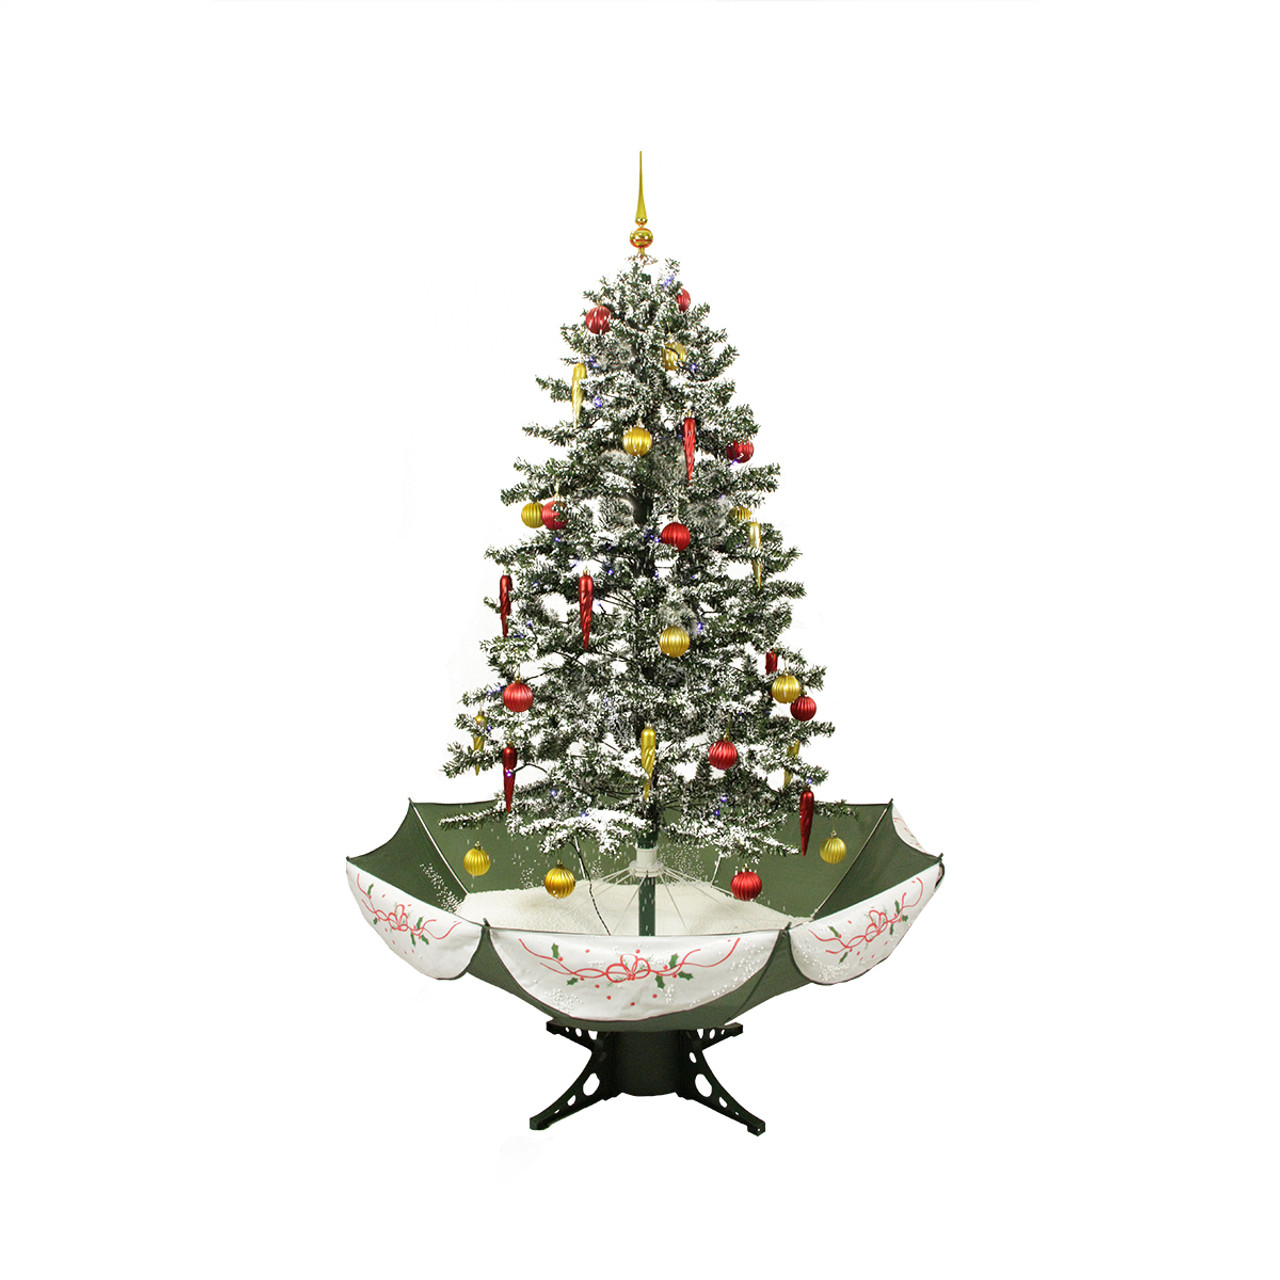 Pre Lit Led Lights Christmas Tree: 5.5' Pre-Lit Medium Musical Snowing Artificial Christmas